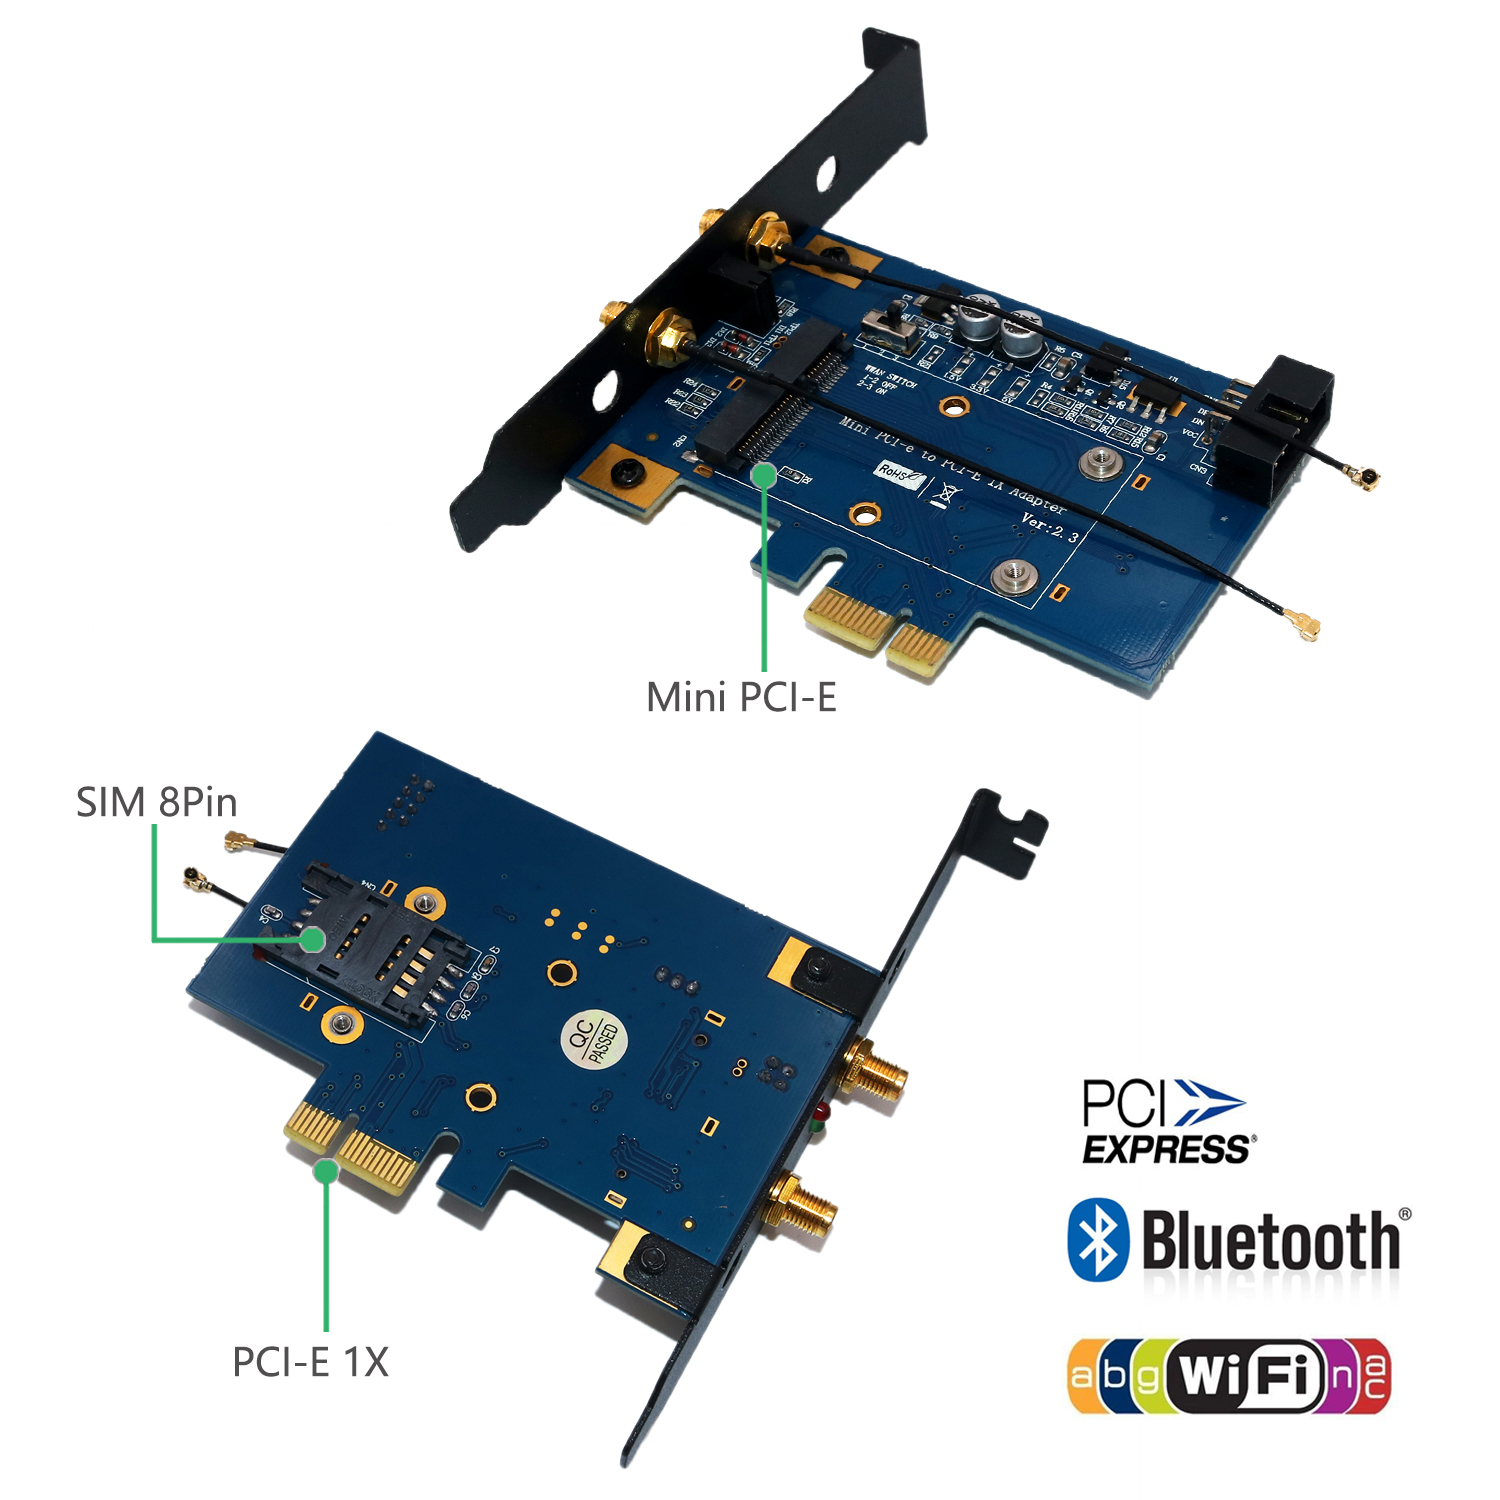 Half to Full Size Adapter for mSATA SSD and Mini PCI-E 3G/4G, WW